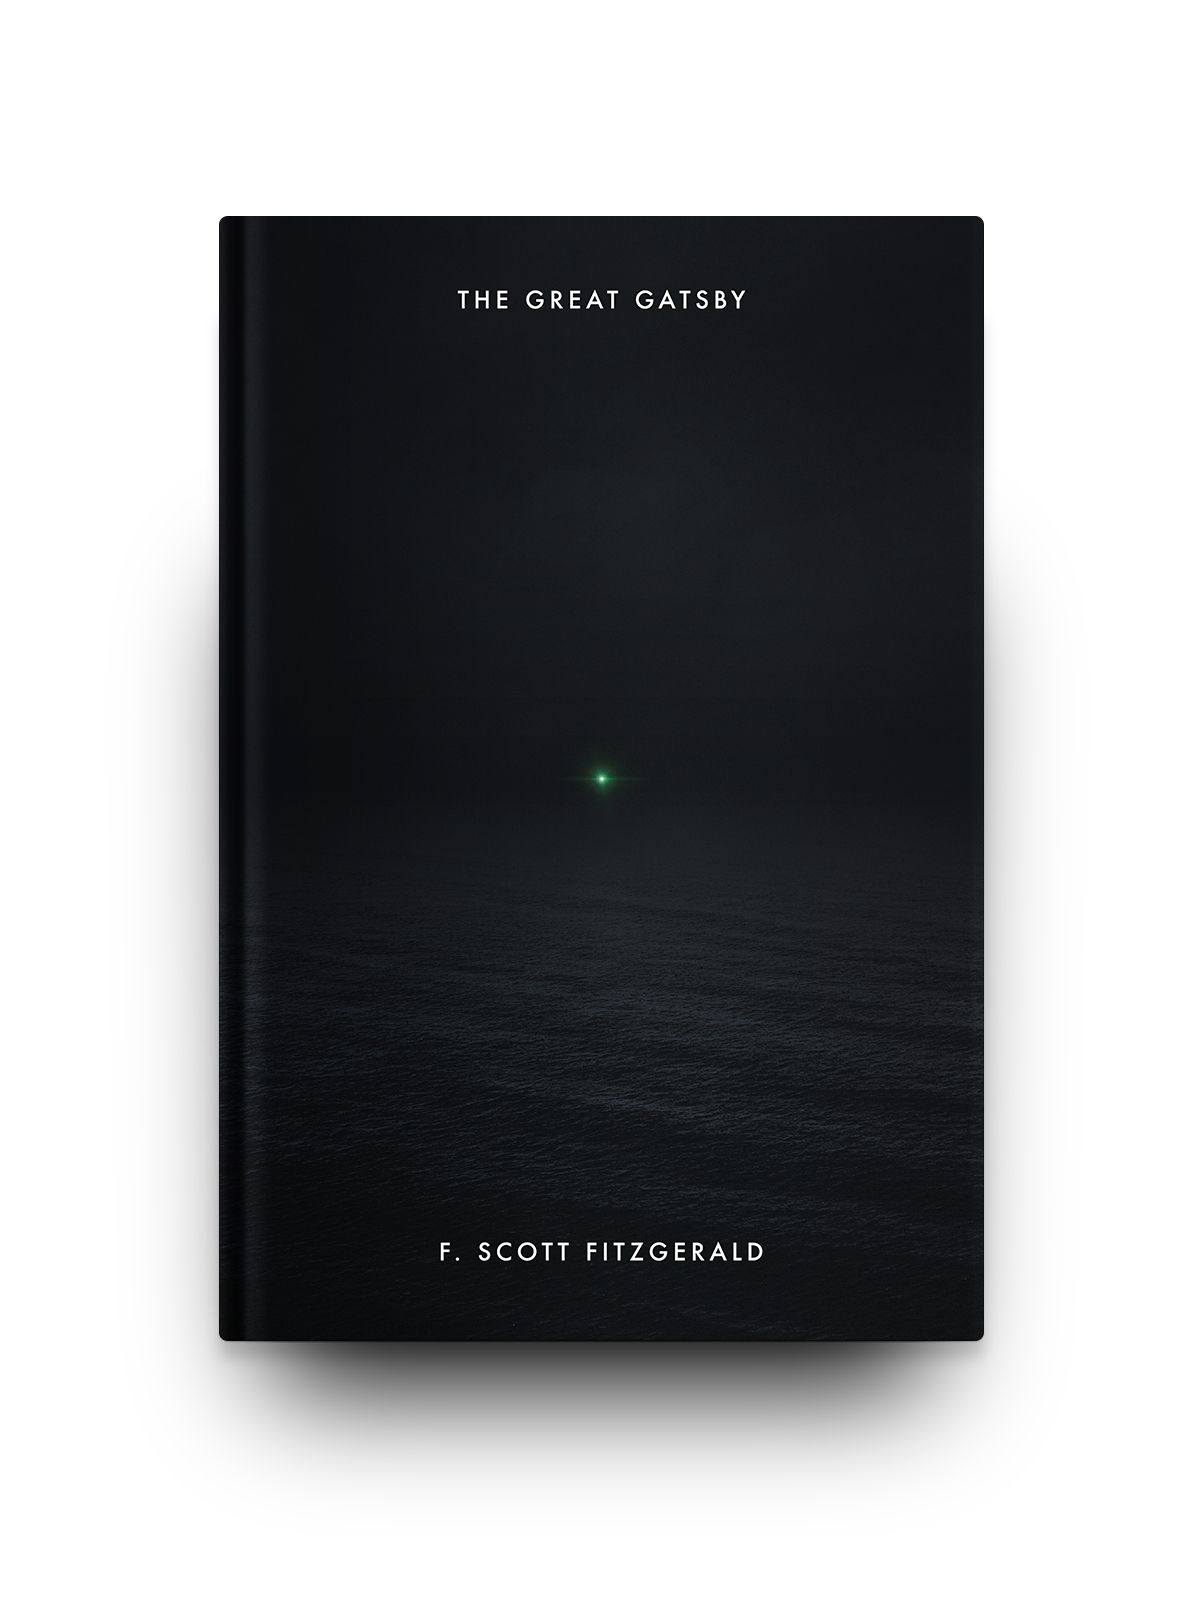 awesome book design of the great gatsby minimal graphics